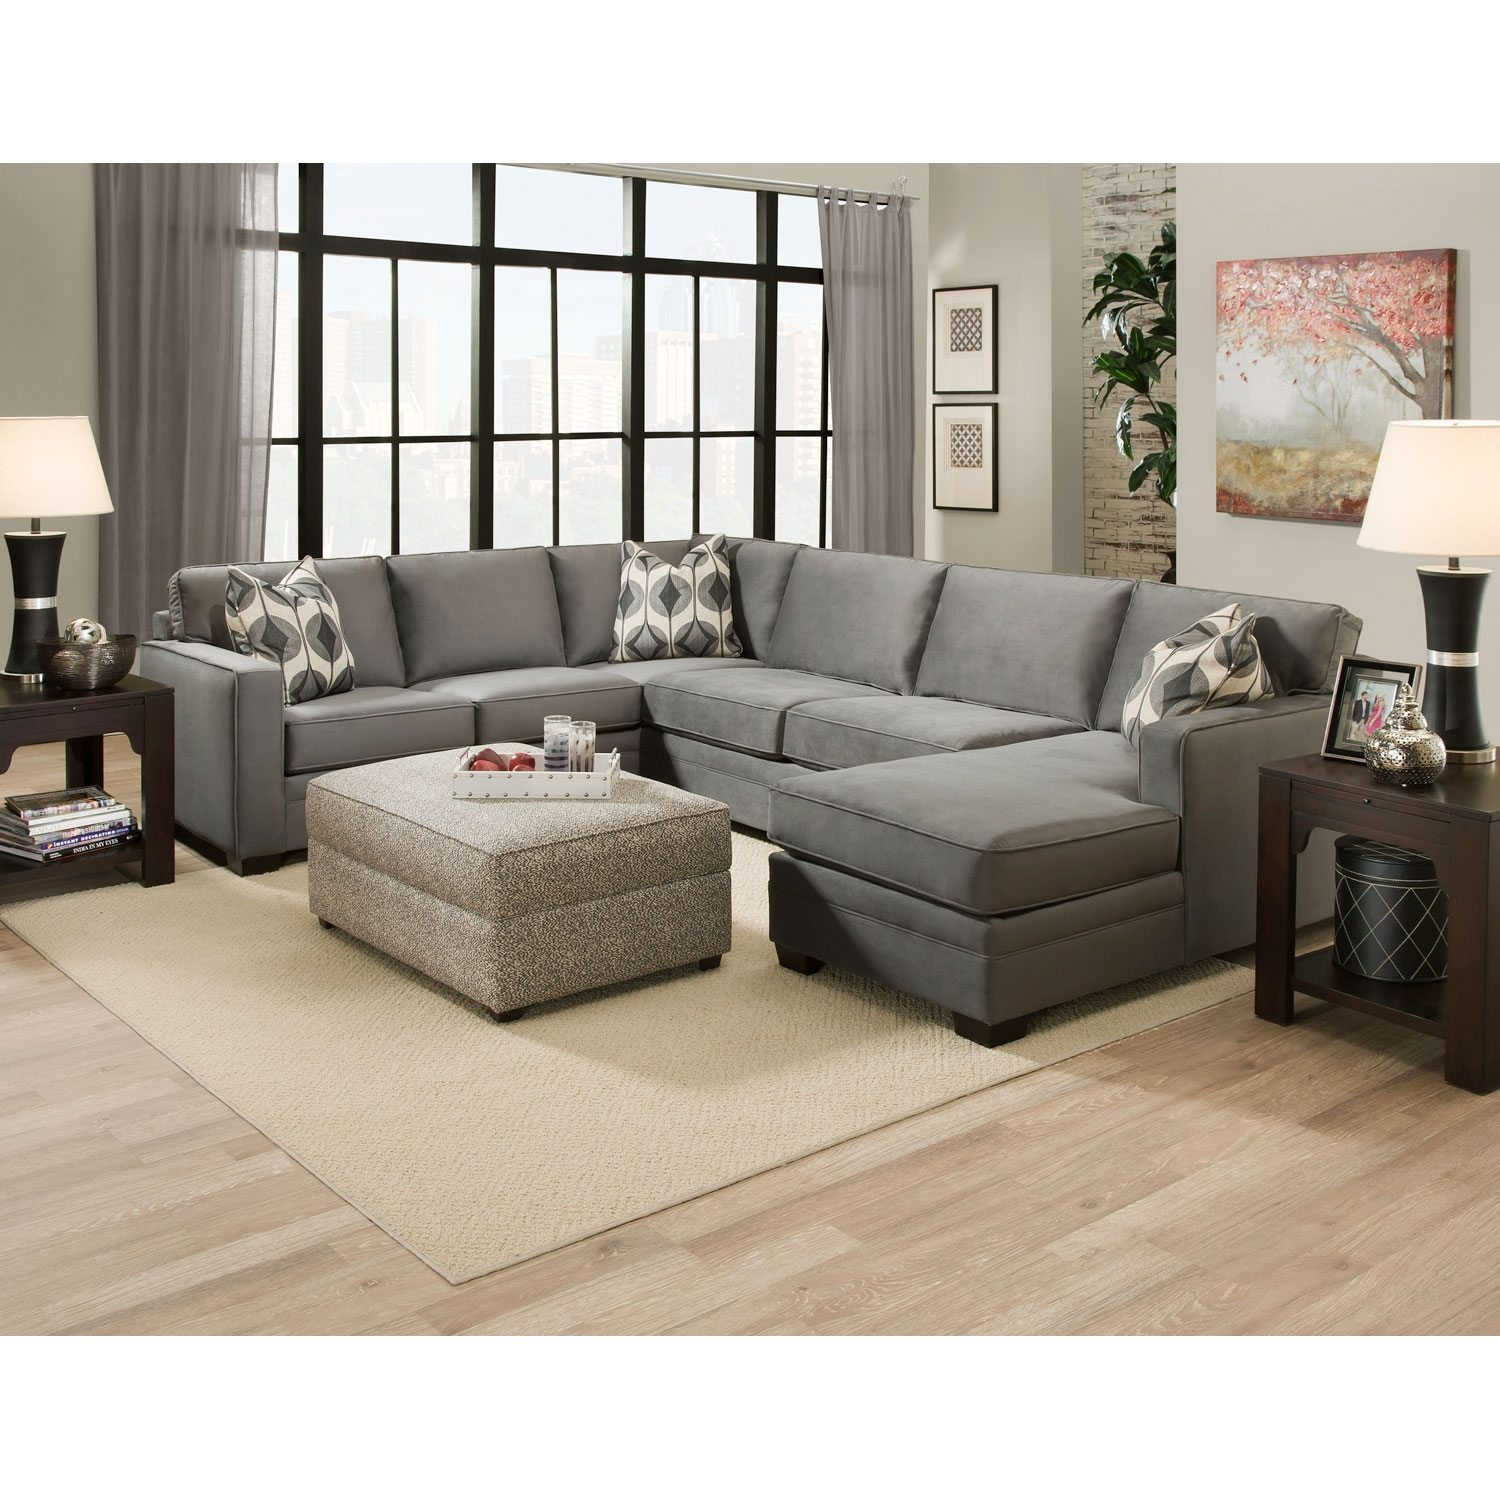 Costco Sofas Sectionals Leather Sectional Costco Couch Costco